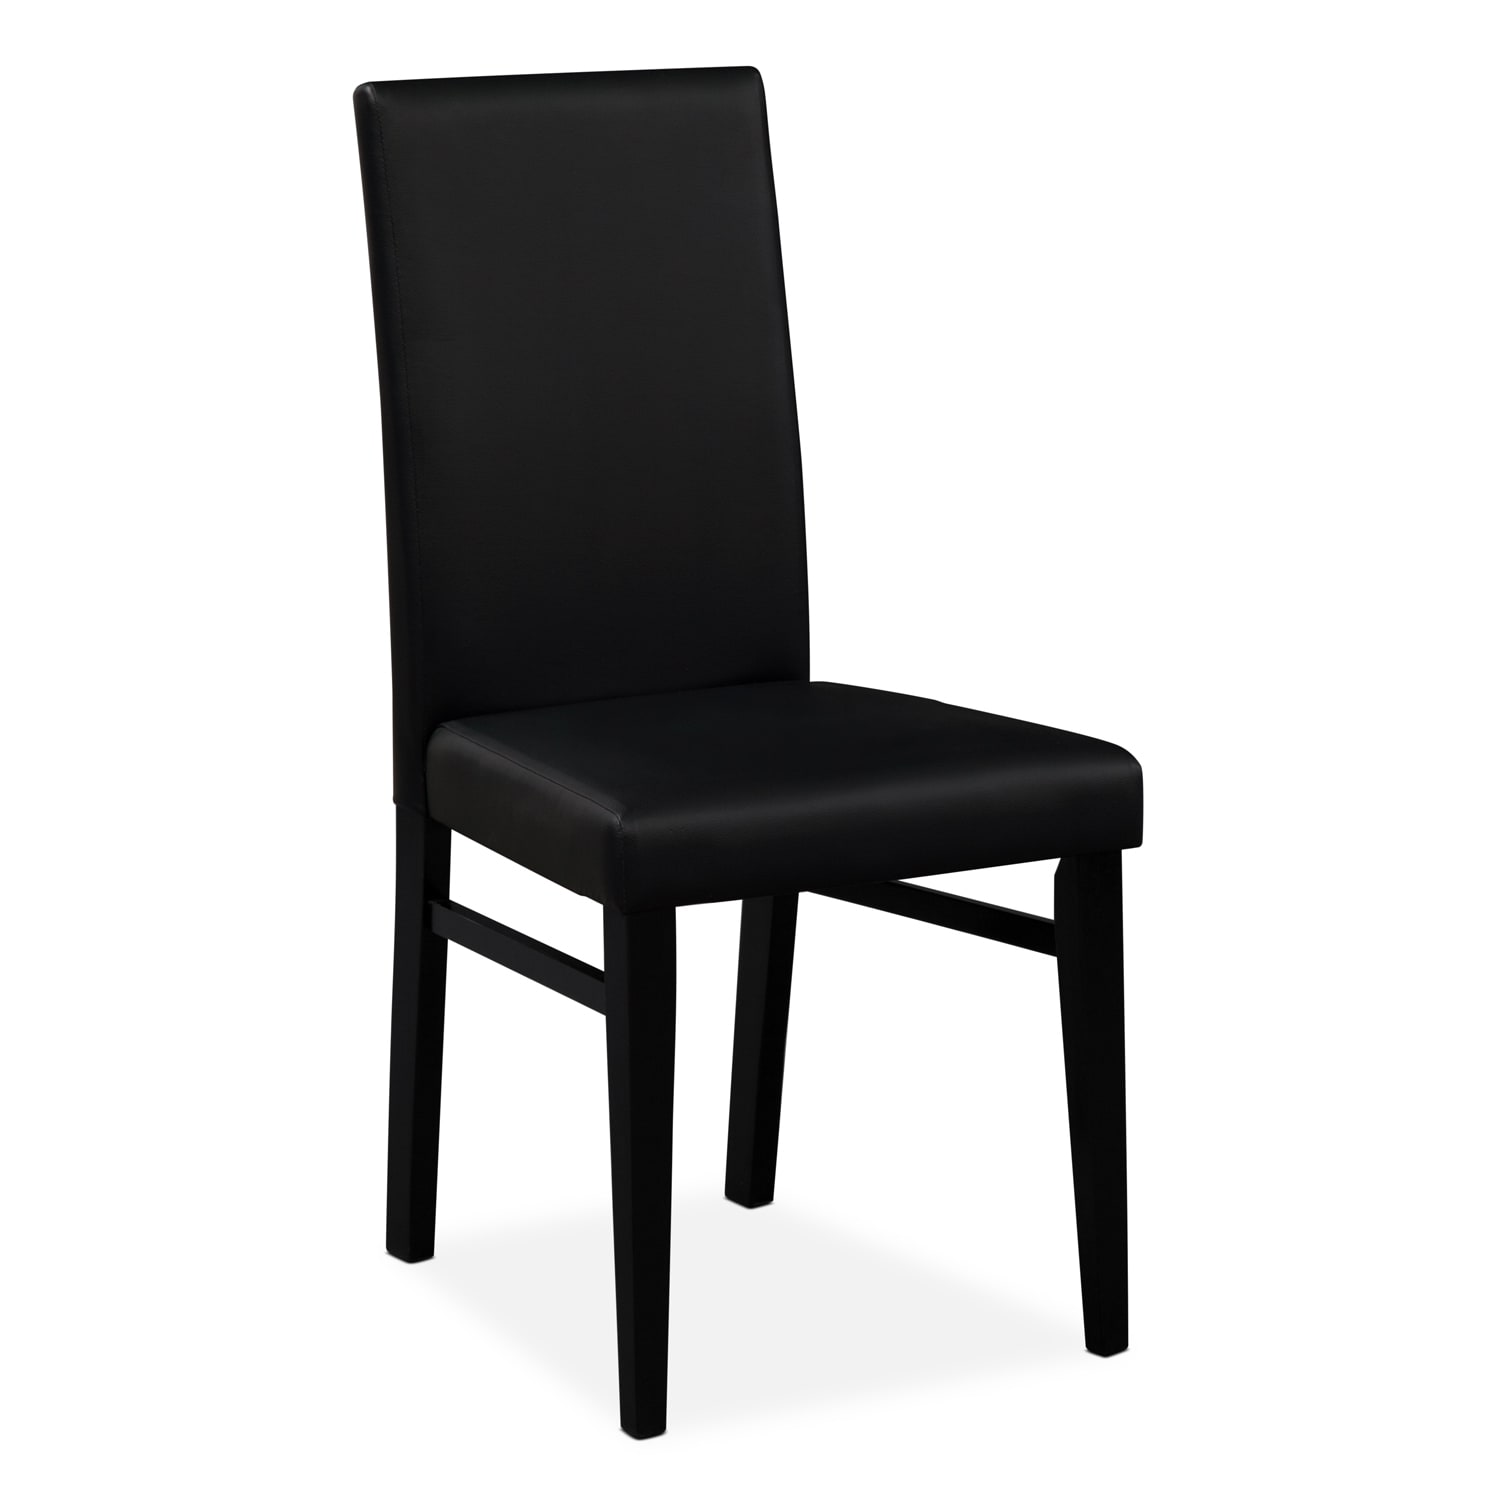 Patio Dining Set For 10 Tennsat.com. Full resolution  portraiture, nominally Width 1500 Height 1500 pixels, portraiture with #565351.